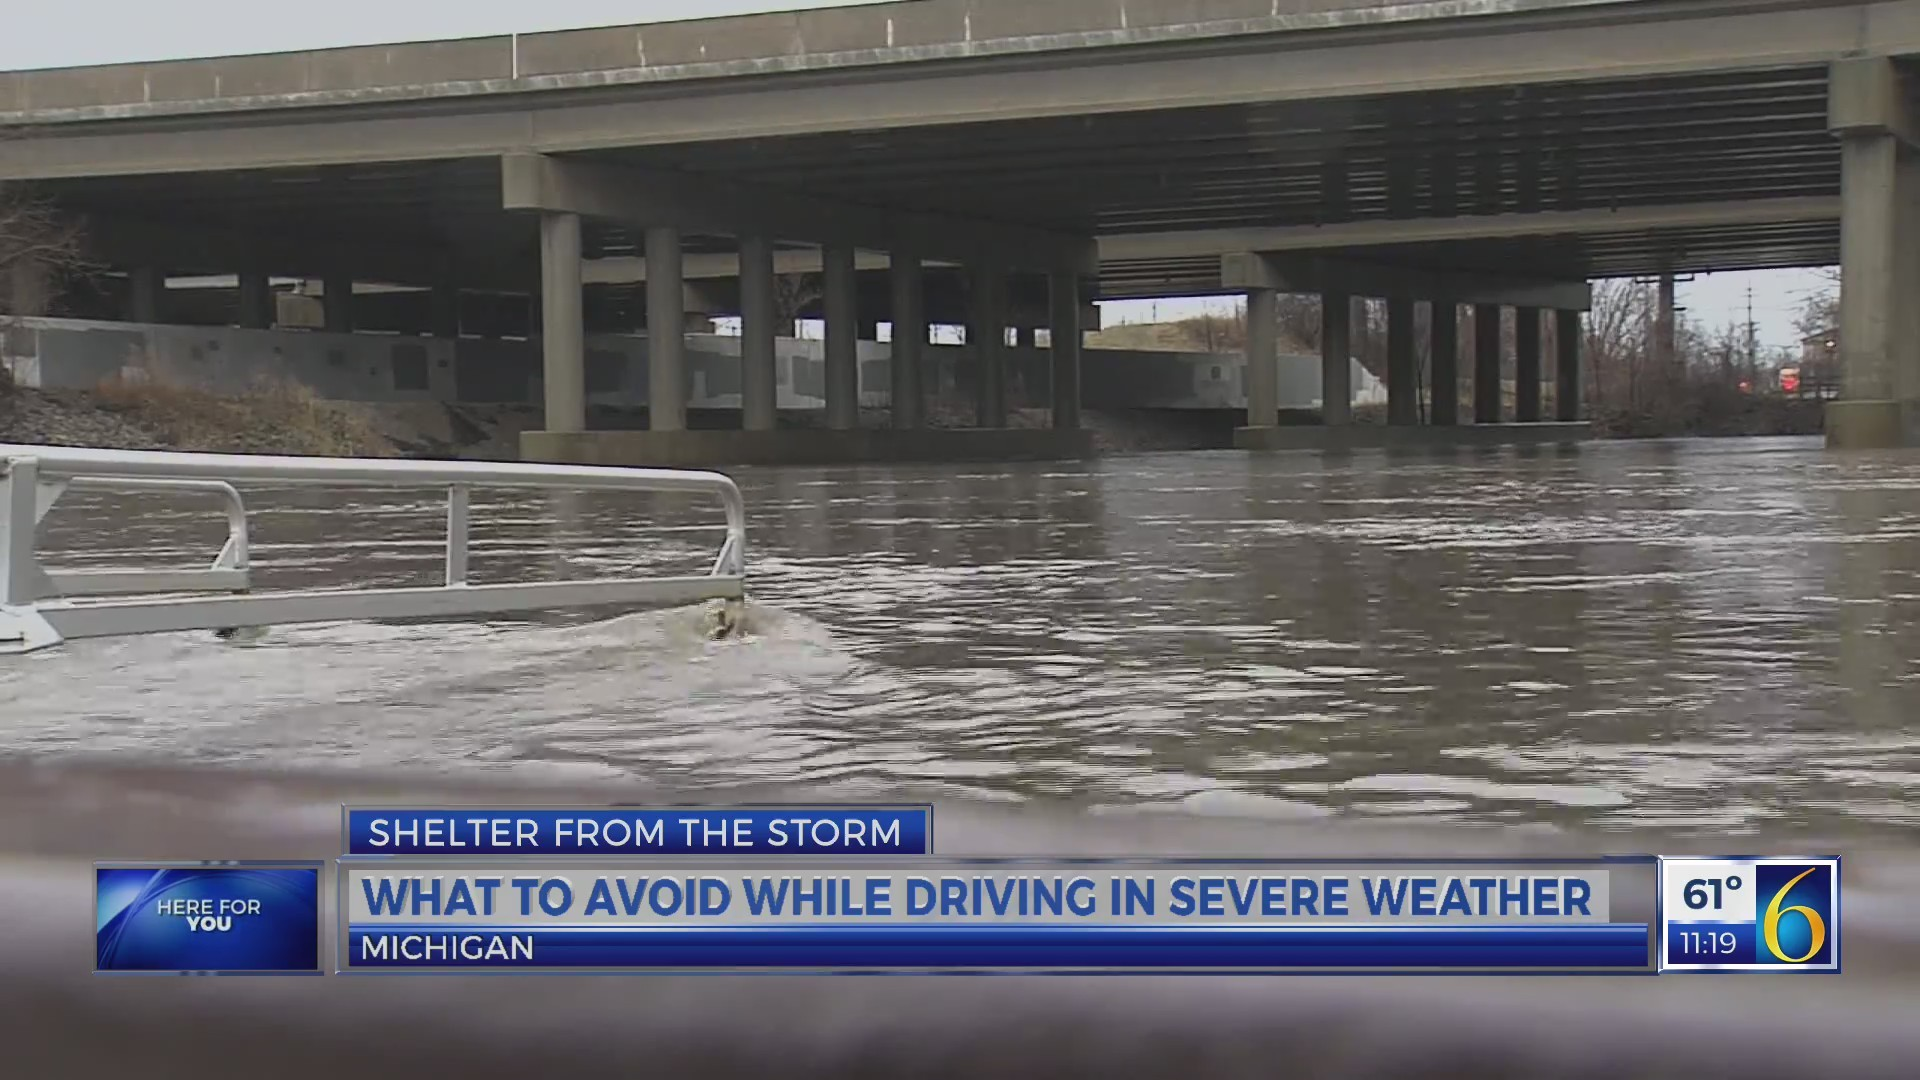 What to avoid while driving in severe weather